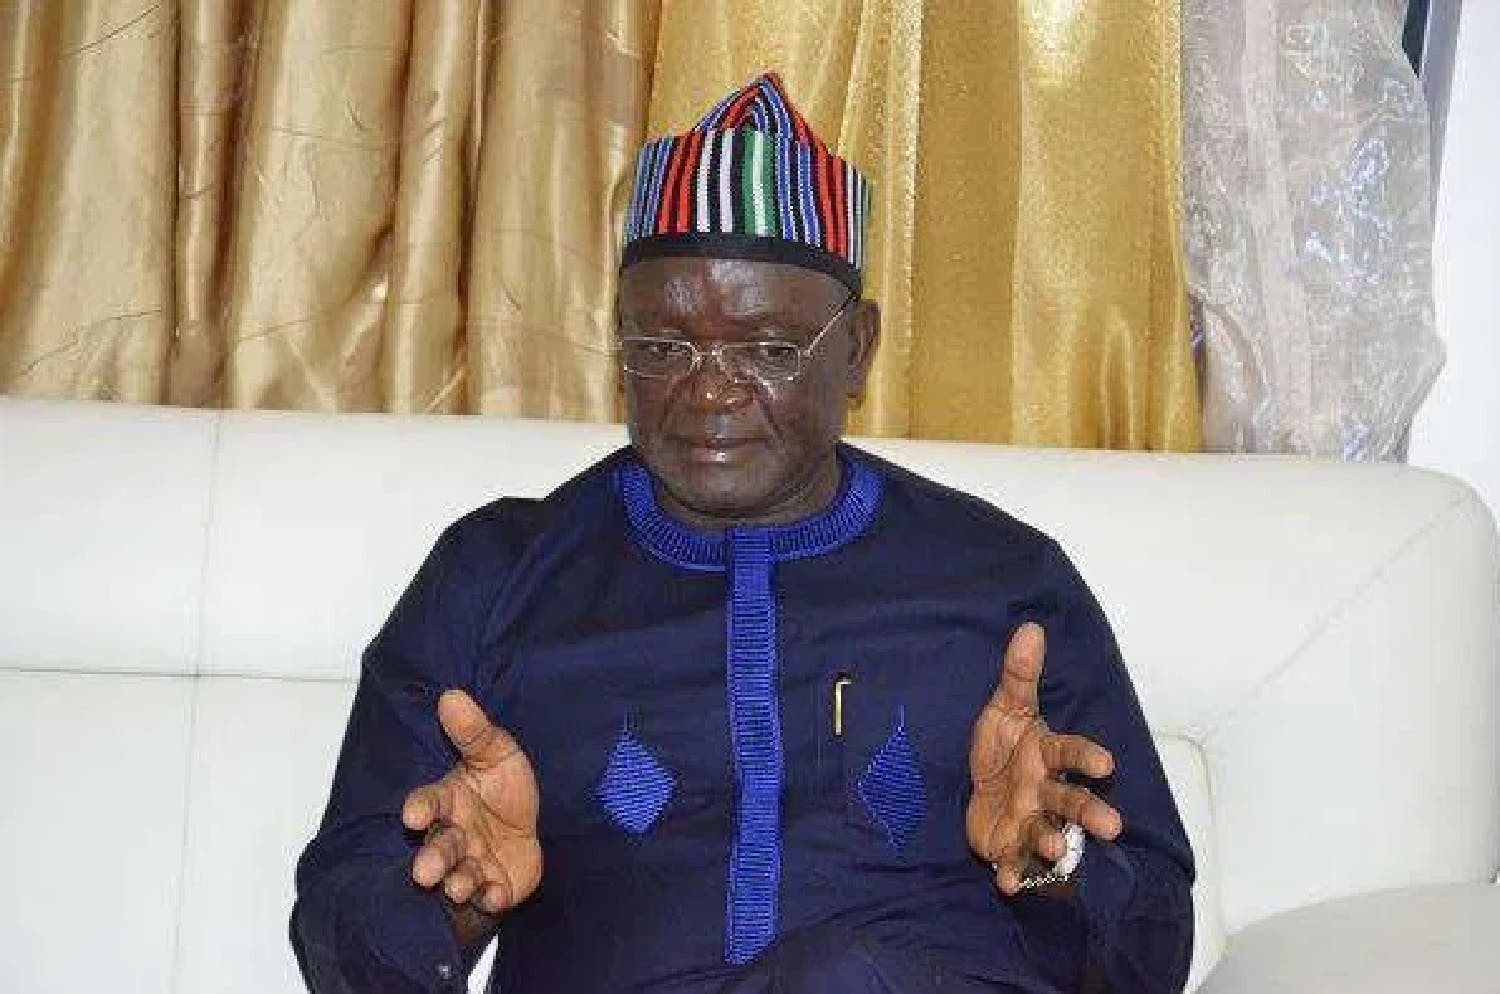 Bishop Kukah is not the first to suggest that the President should be the father of all and not of only a section of the country - Ortom